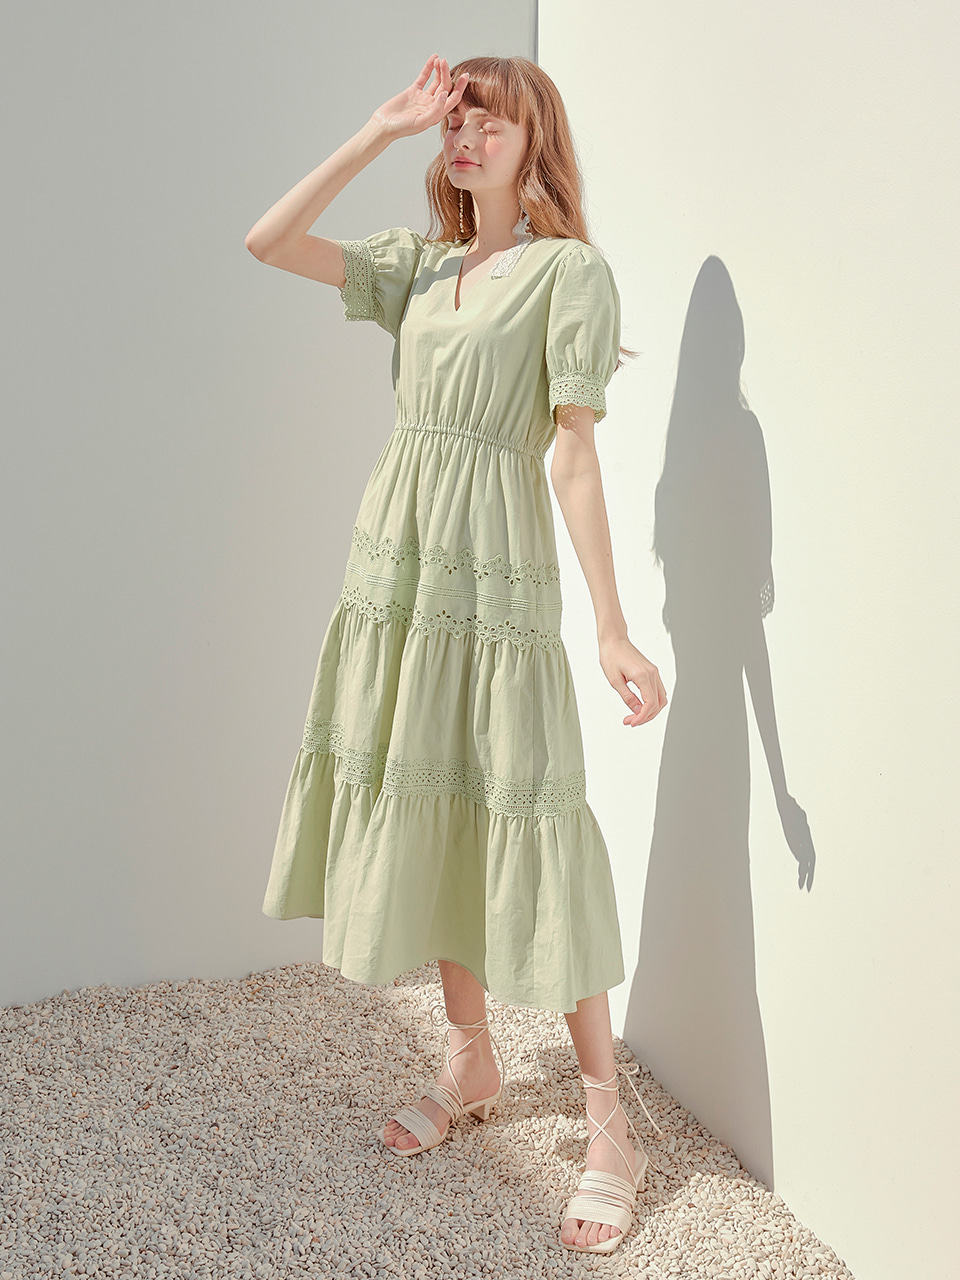 Cotton Punching Lace Dress, Light Green